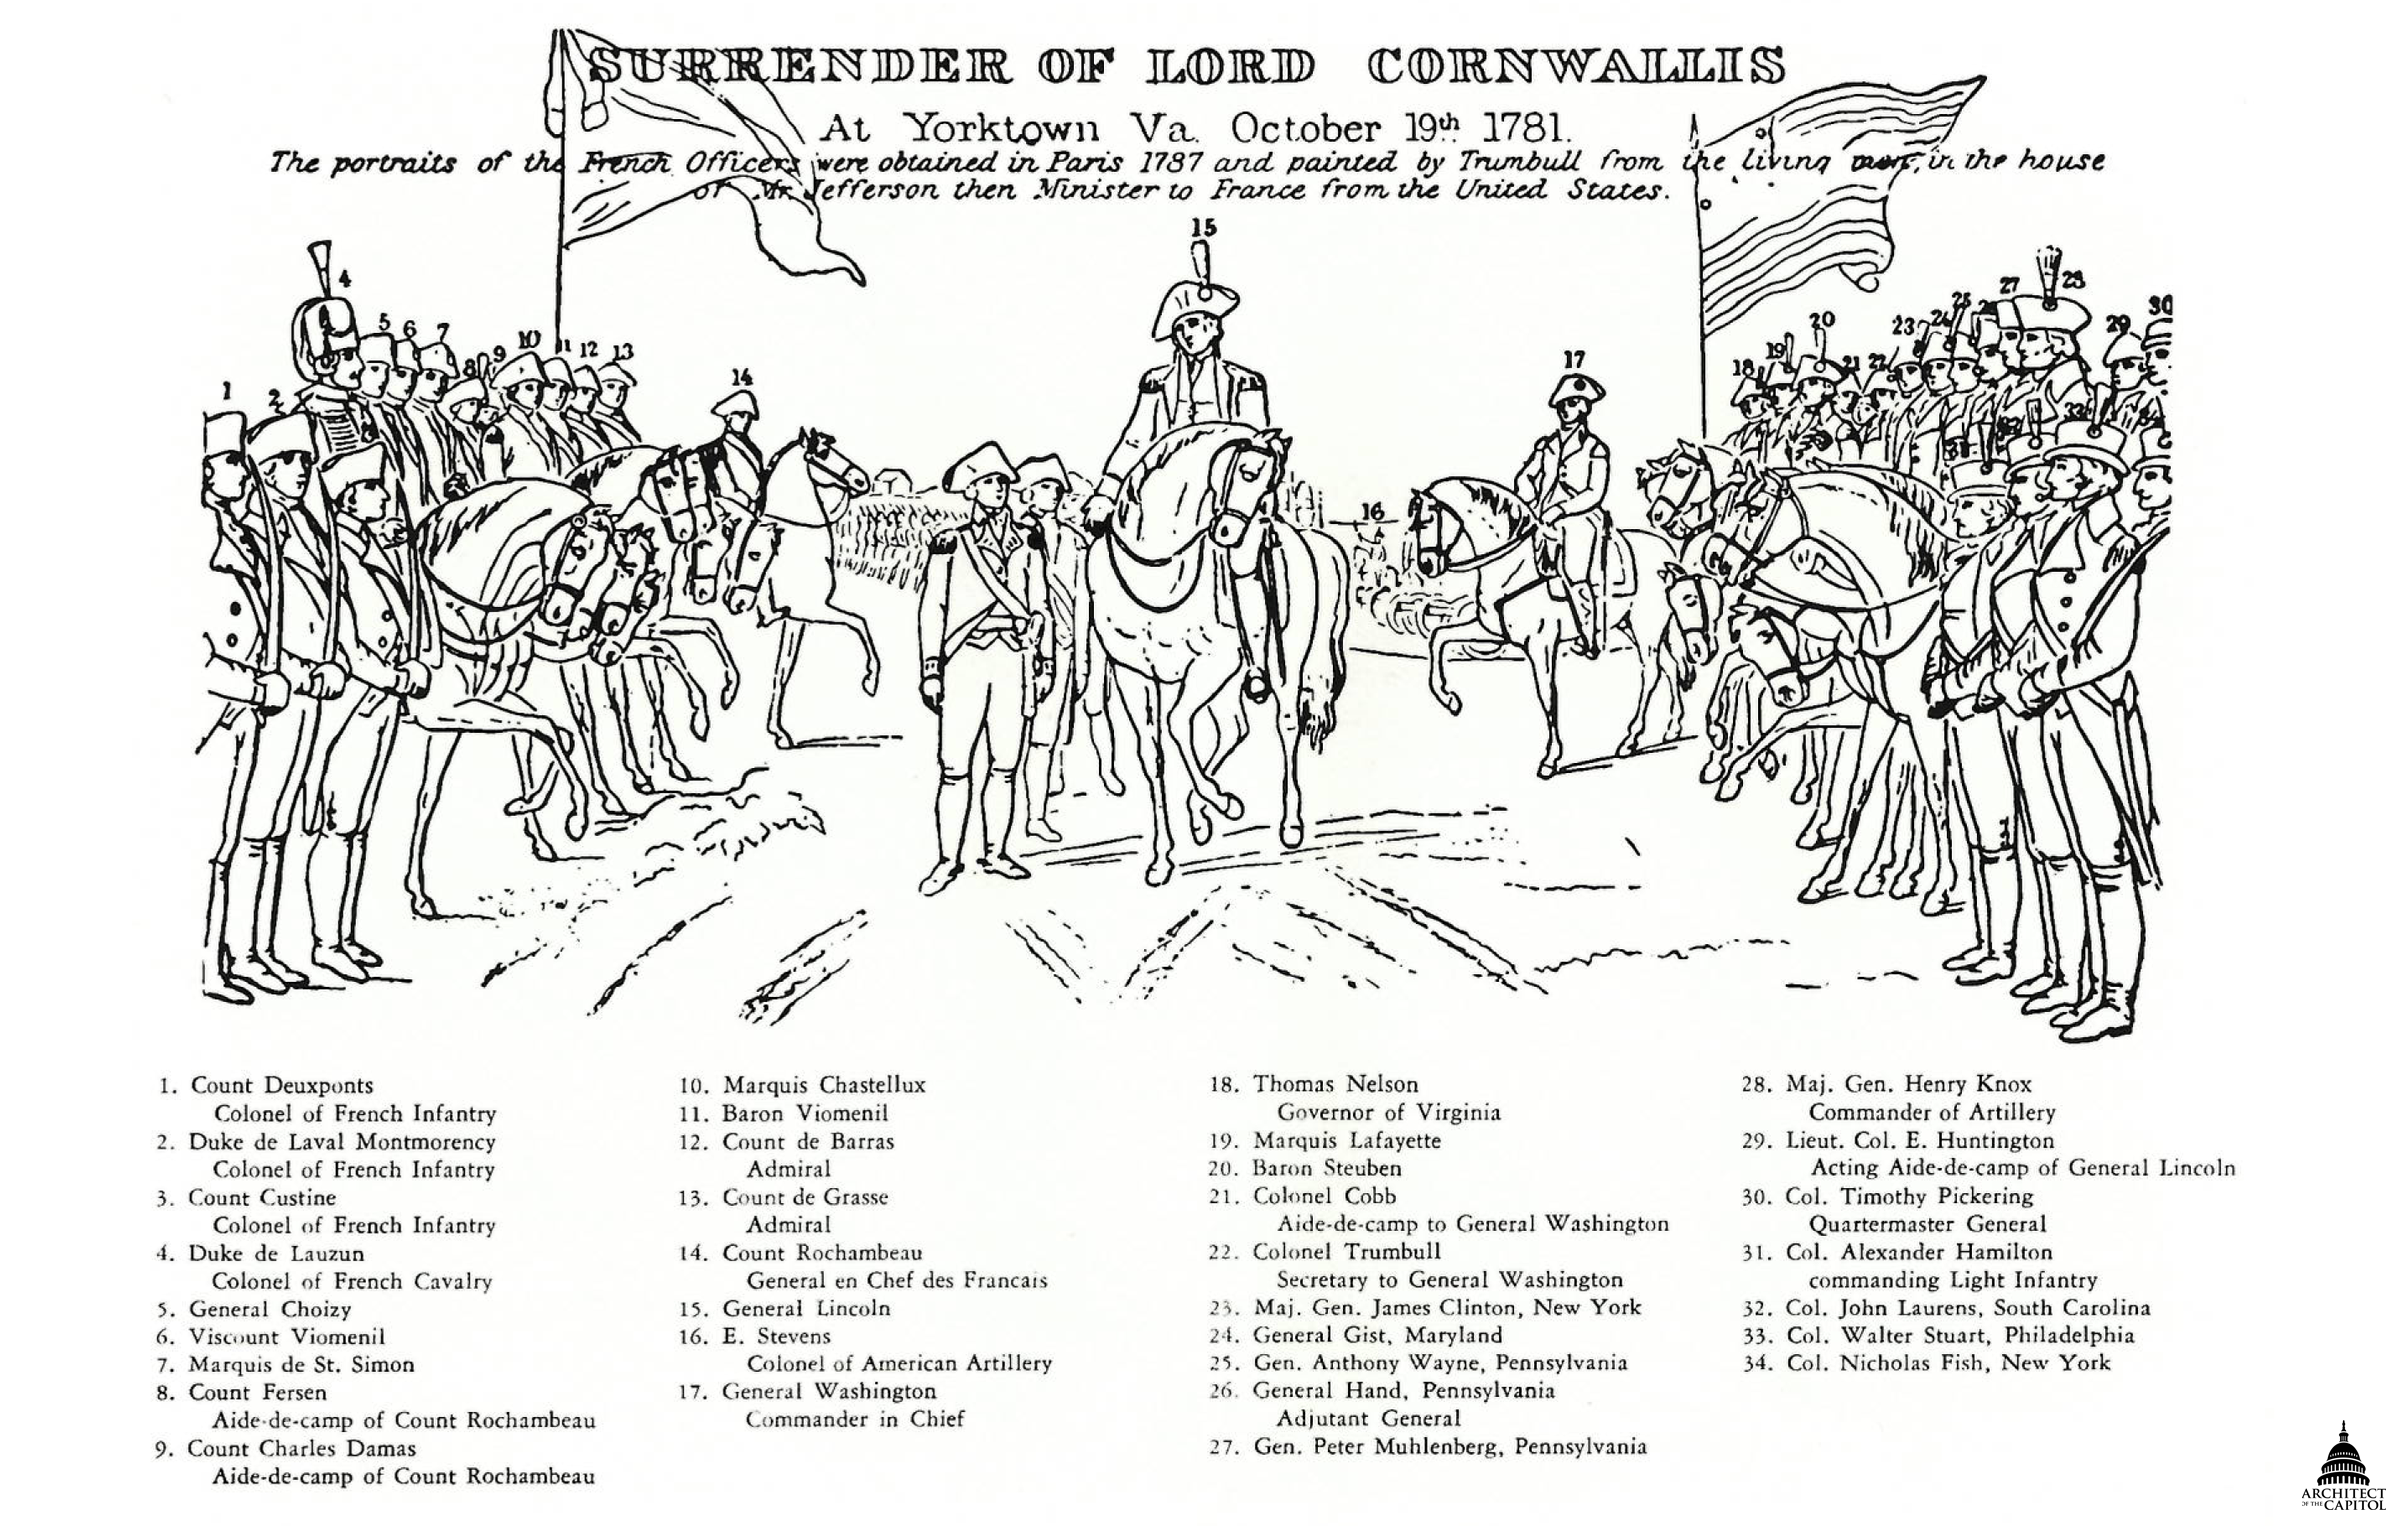 surrender of lord cornwallis architect of the capitol